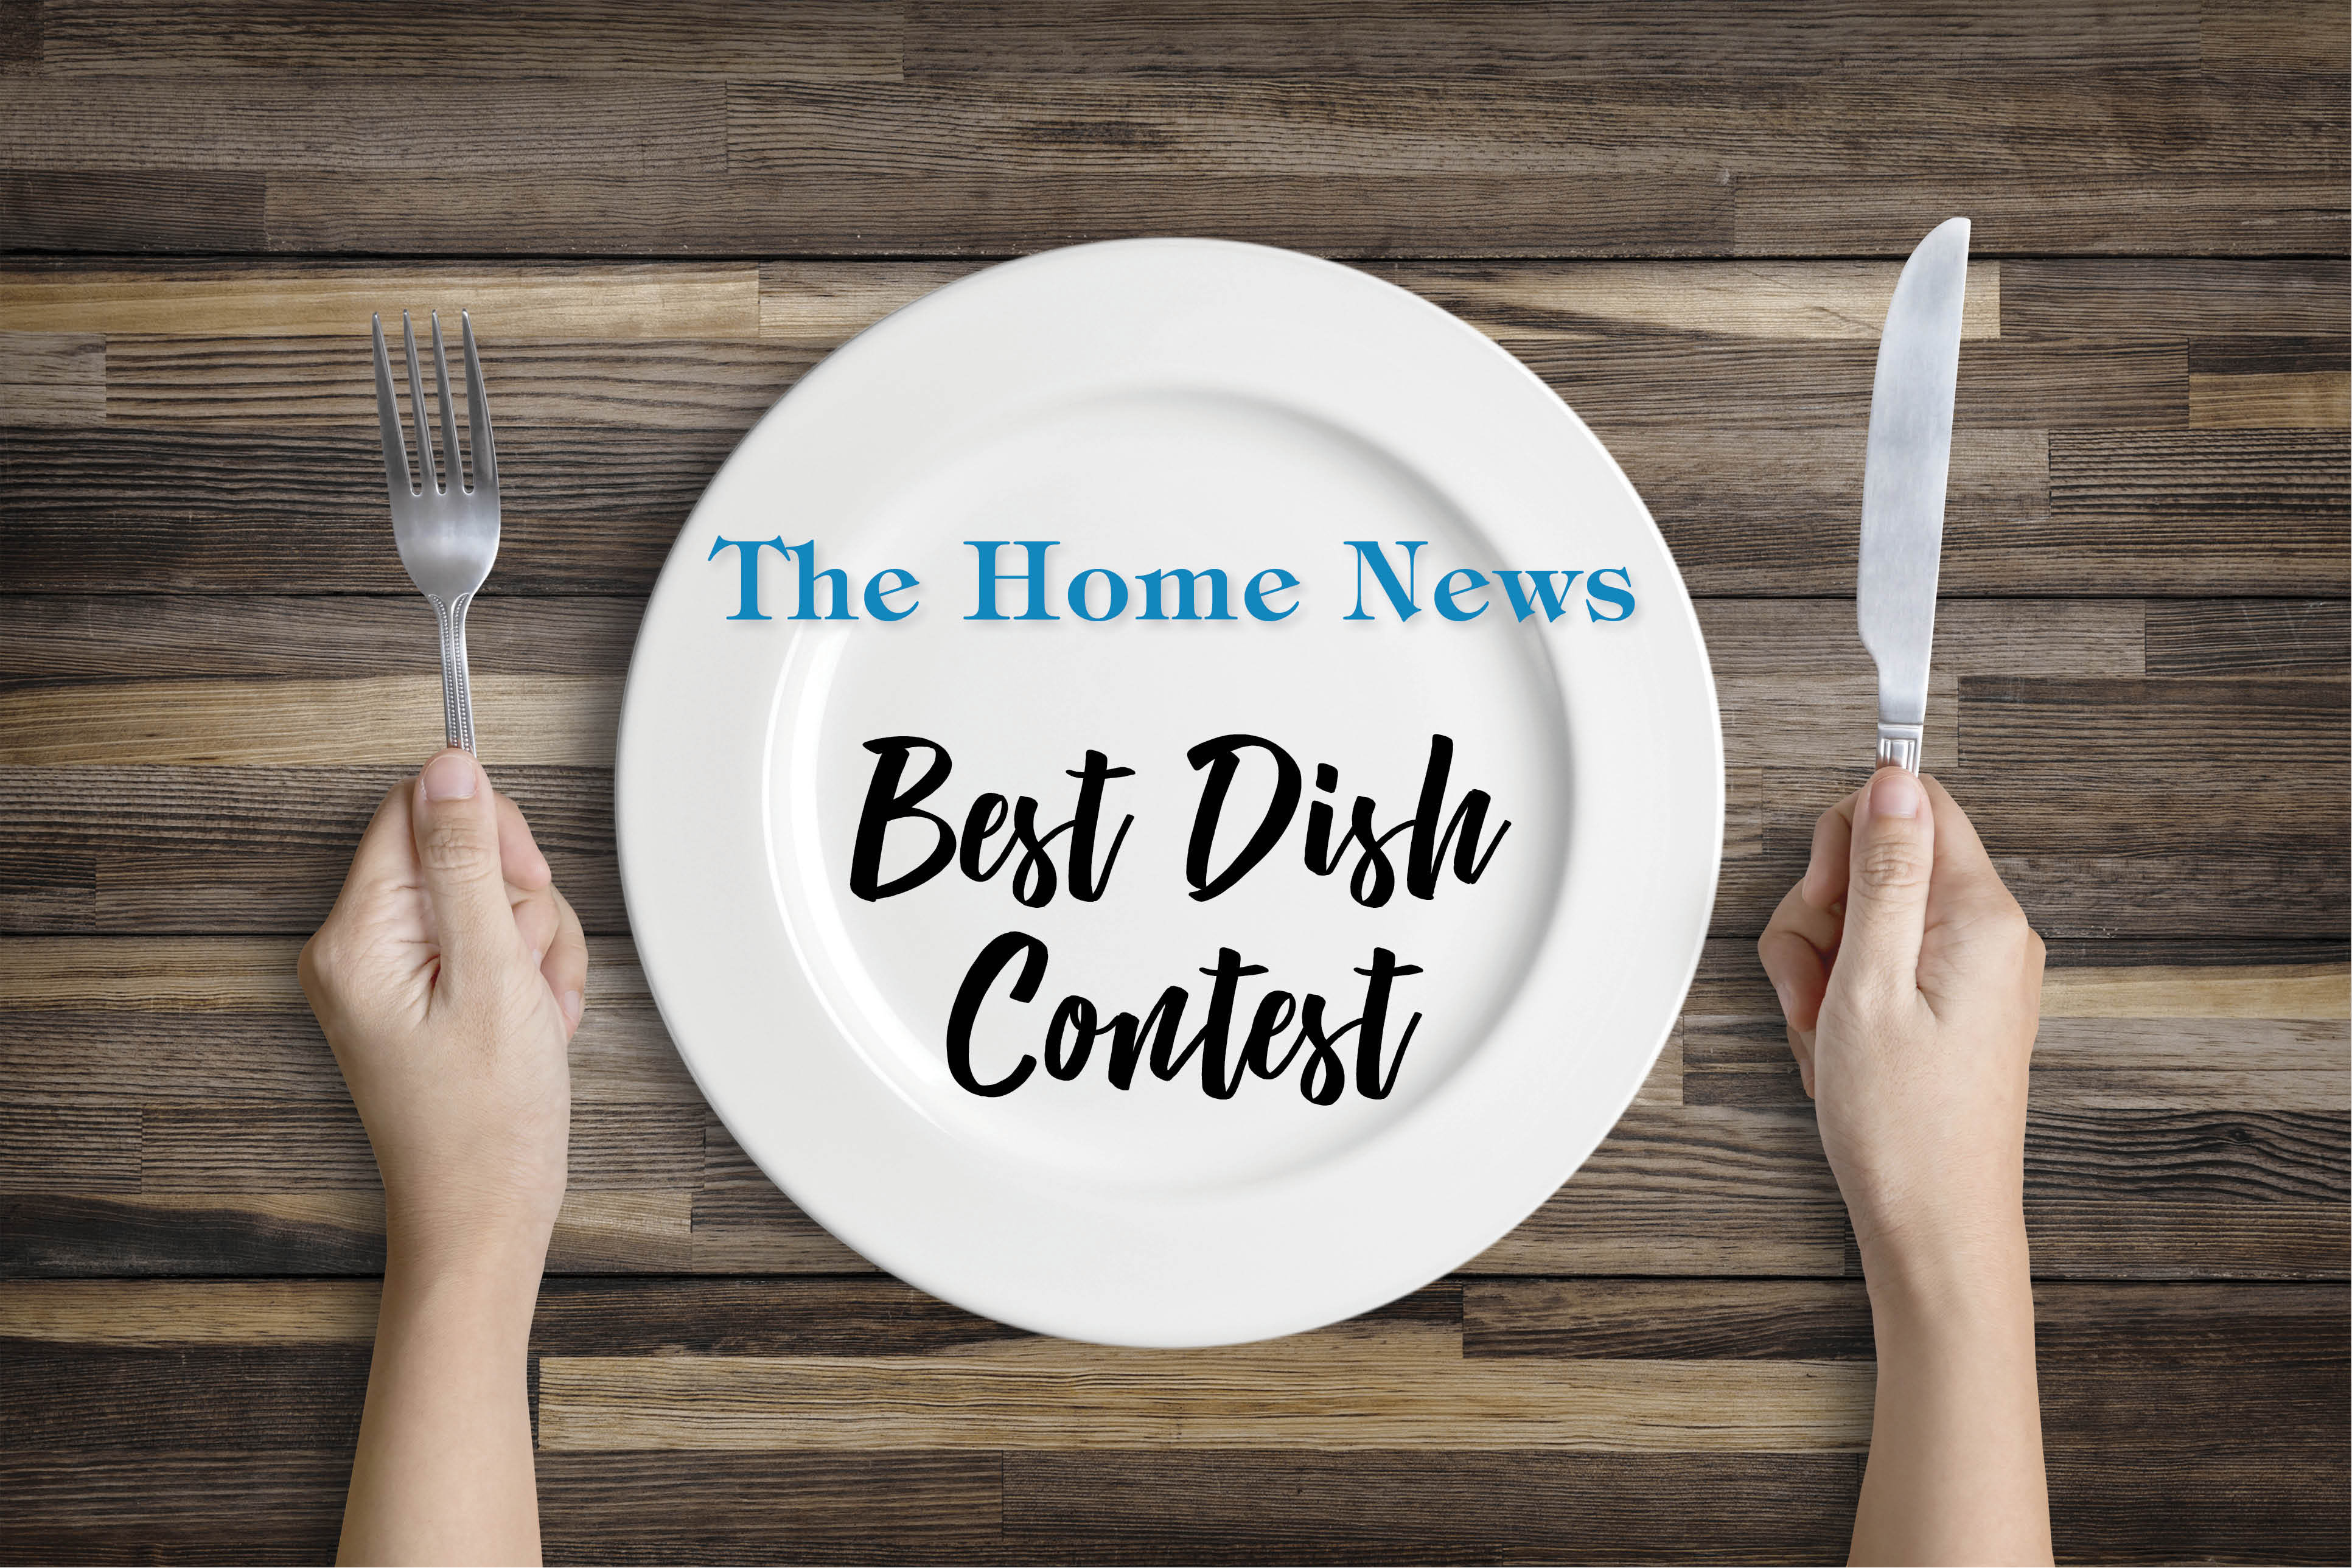 Best Dish Contest Home News